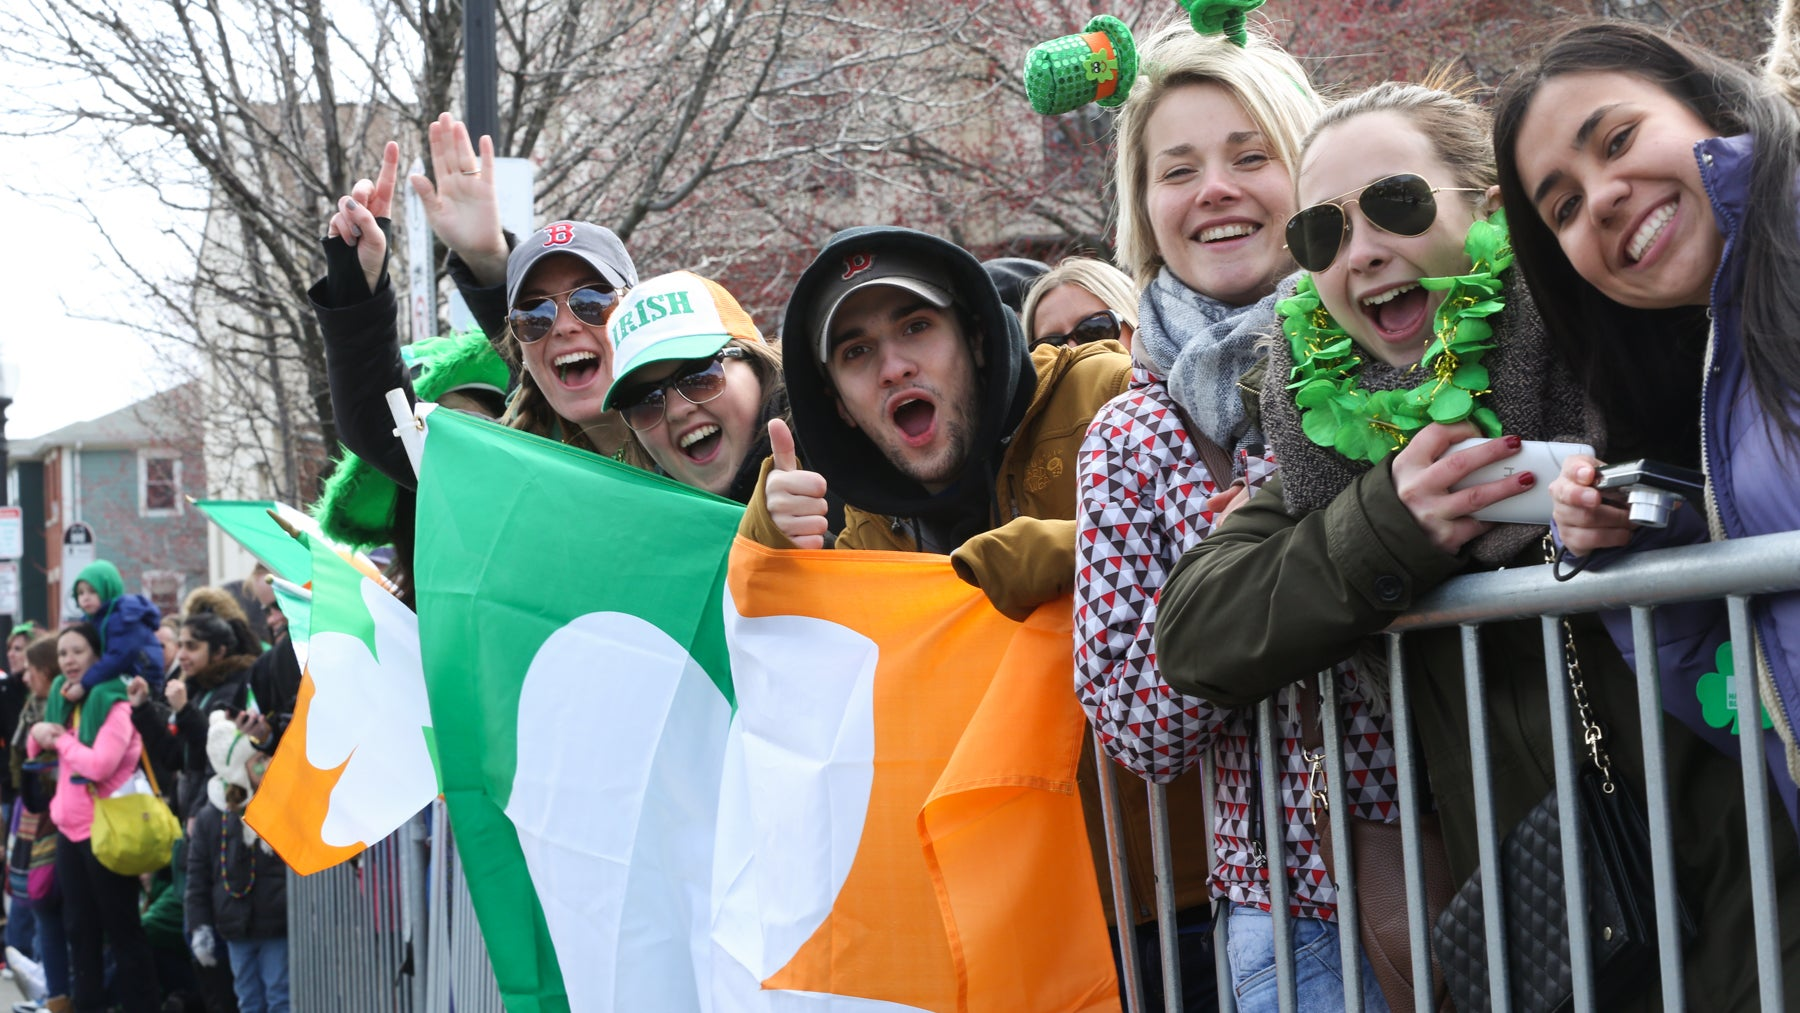 The crowd cheered along the route of the St. Patrick's Day Parade.